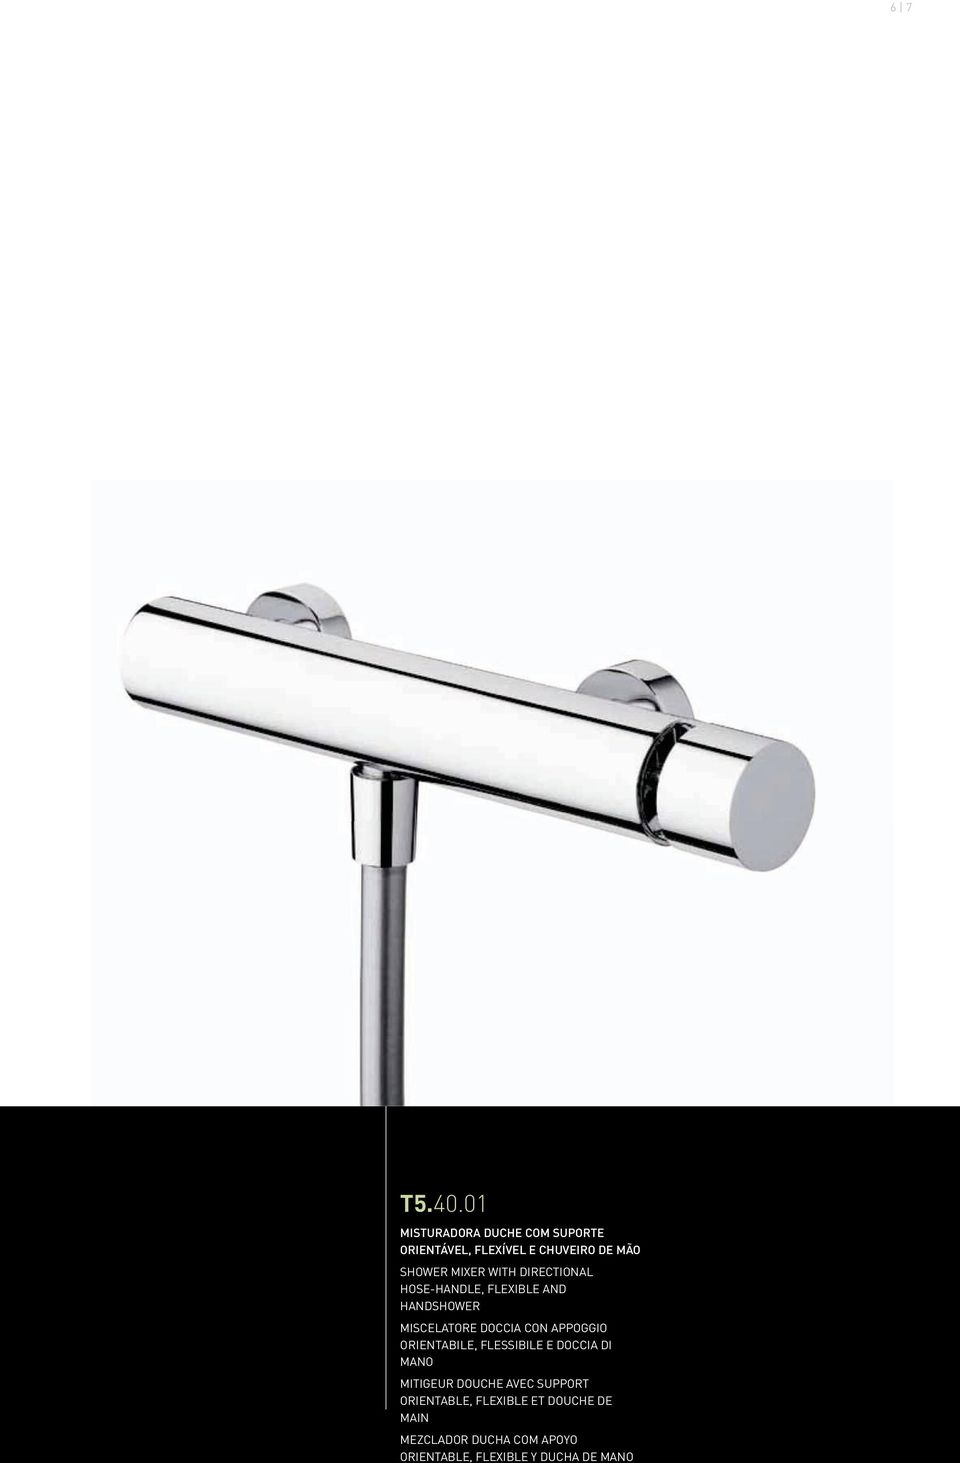 WITH DIRECTIONAL HOSE-HANDLE, FLEXIBLE AND HANDSHOWER MISCELATORE DOCCIA CON APPOGGIO